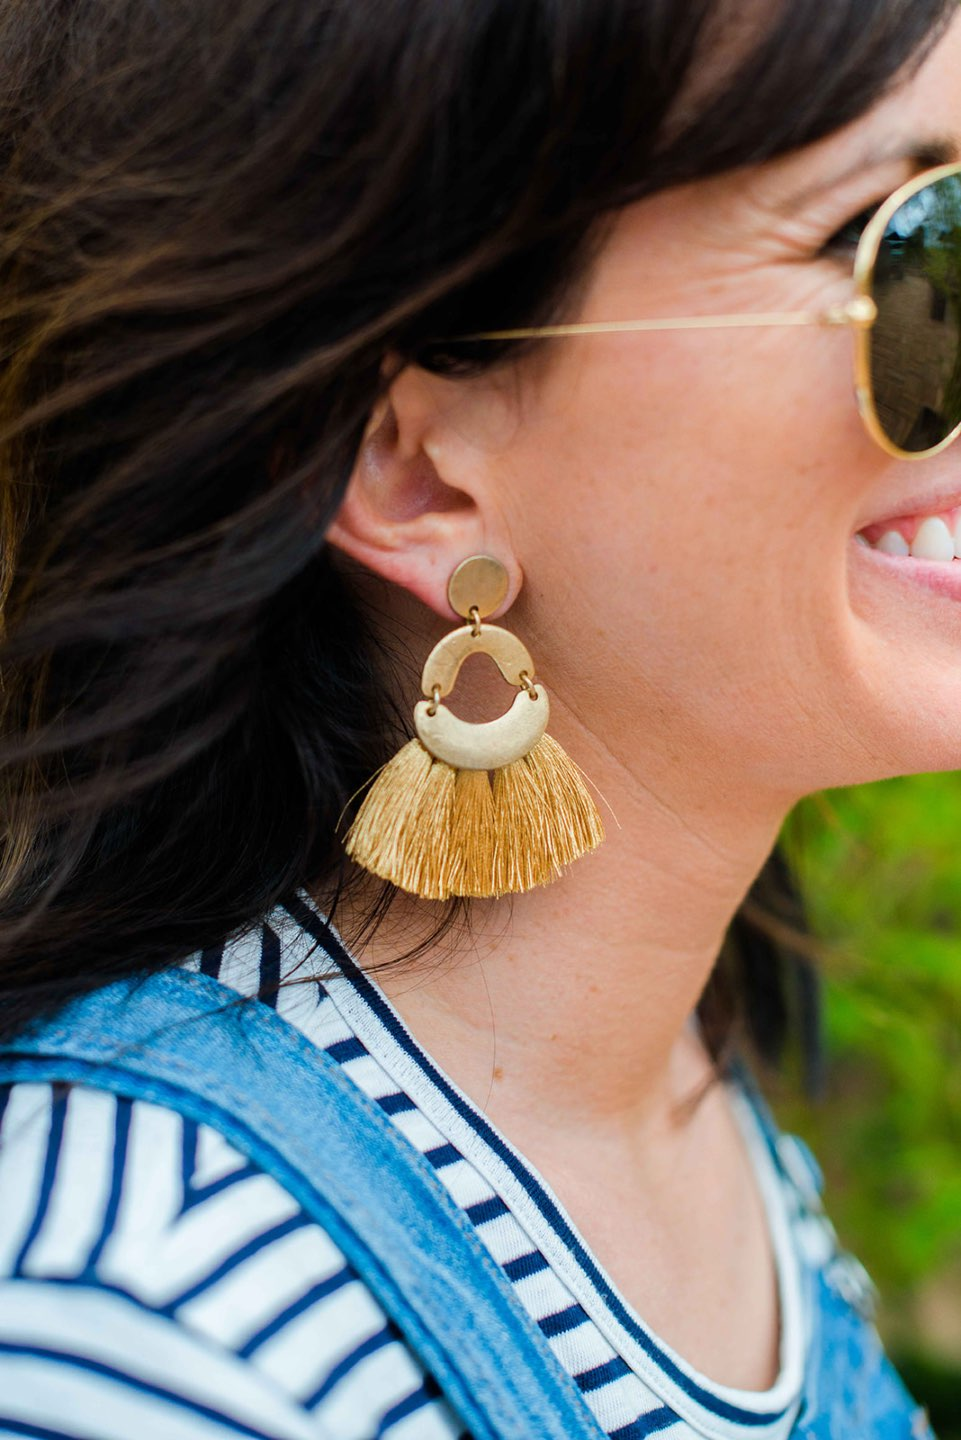 Statement Earrings You Need This Summer - I'm Fixin' To - @mbg0112